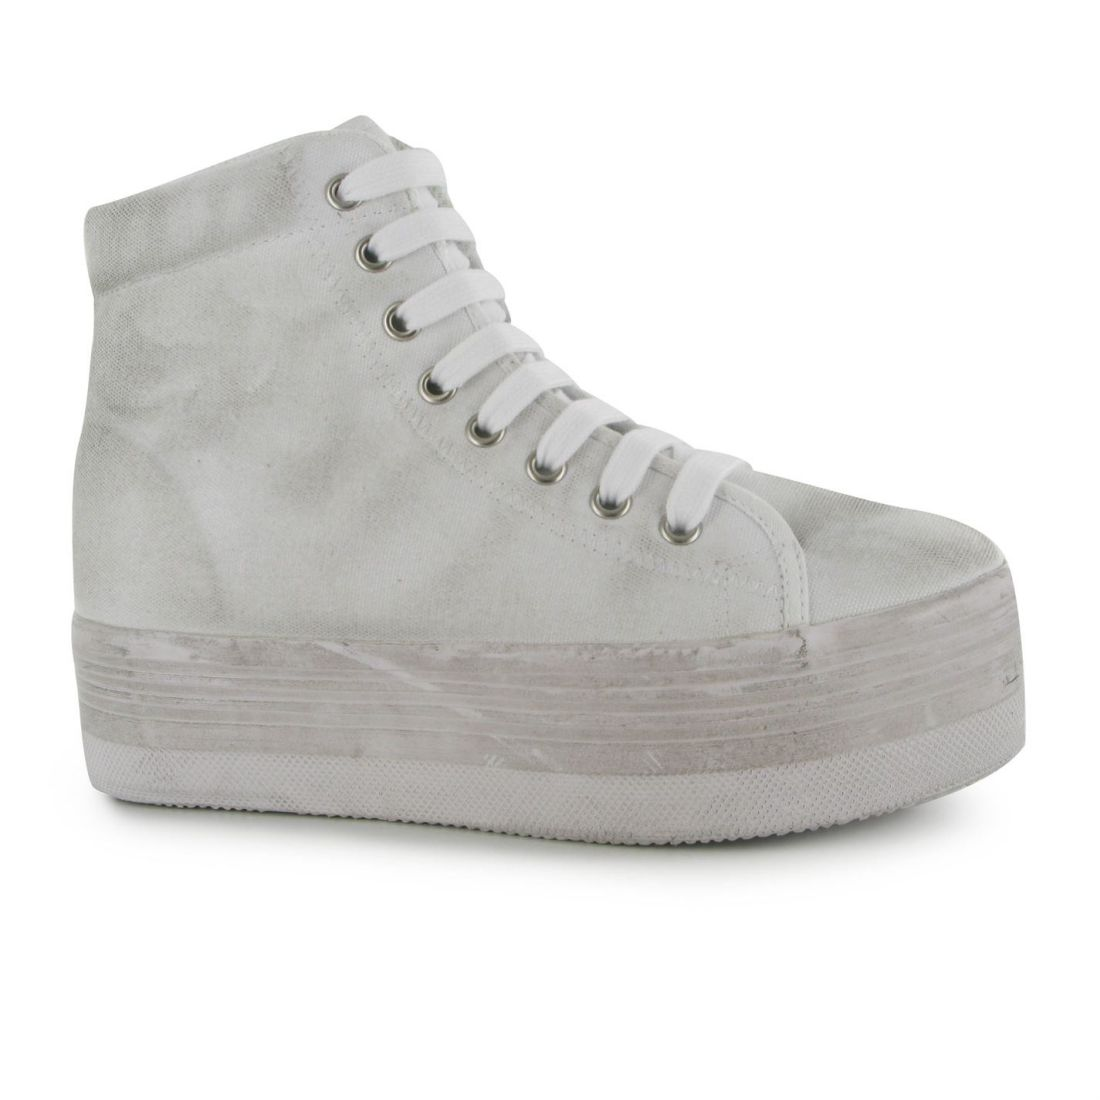 Image is loading Jeffrey-Campbell-Ladies-Womens-Shoes-Play-Canvas-Washed- 7e43a6bd2bf